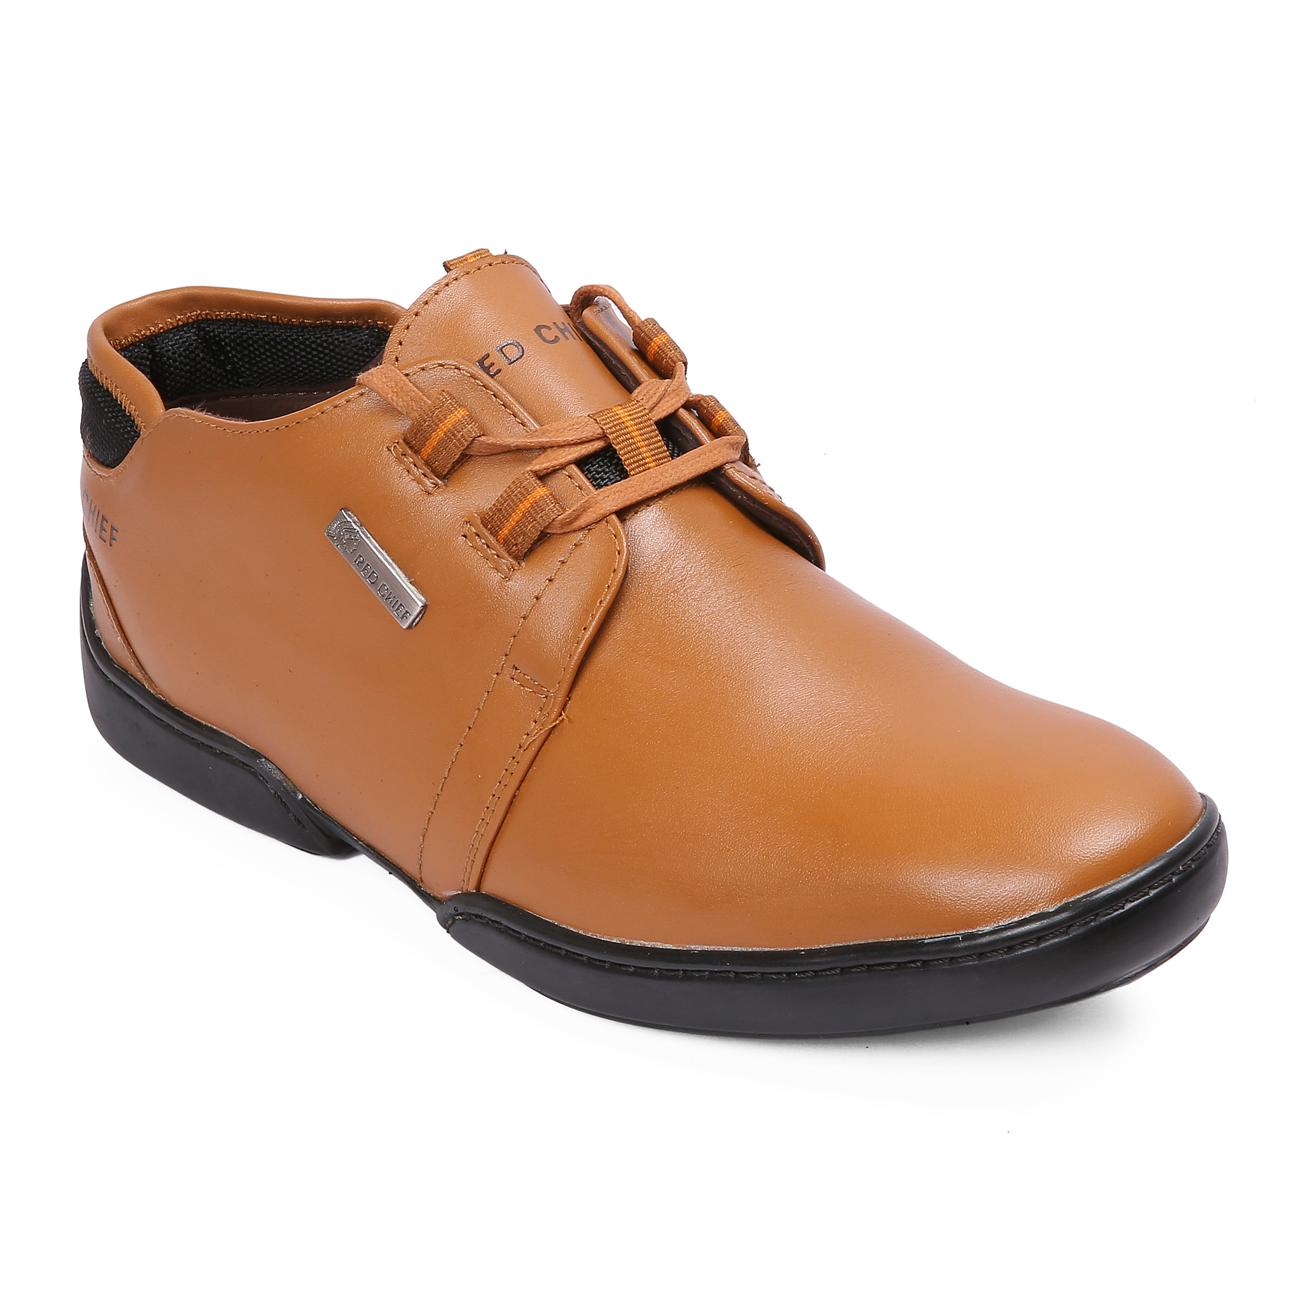 n tan casual leather shoes online